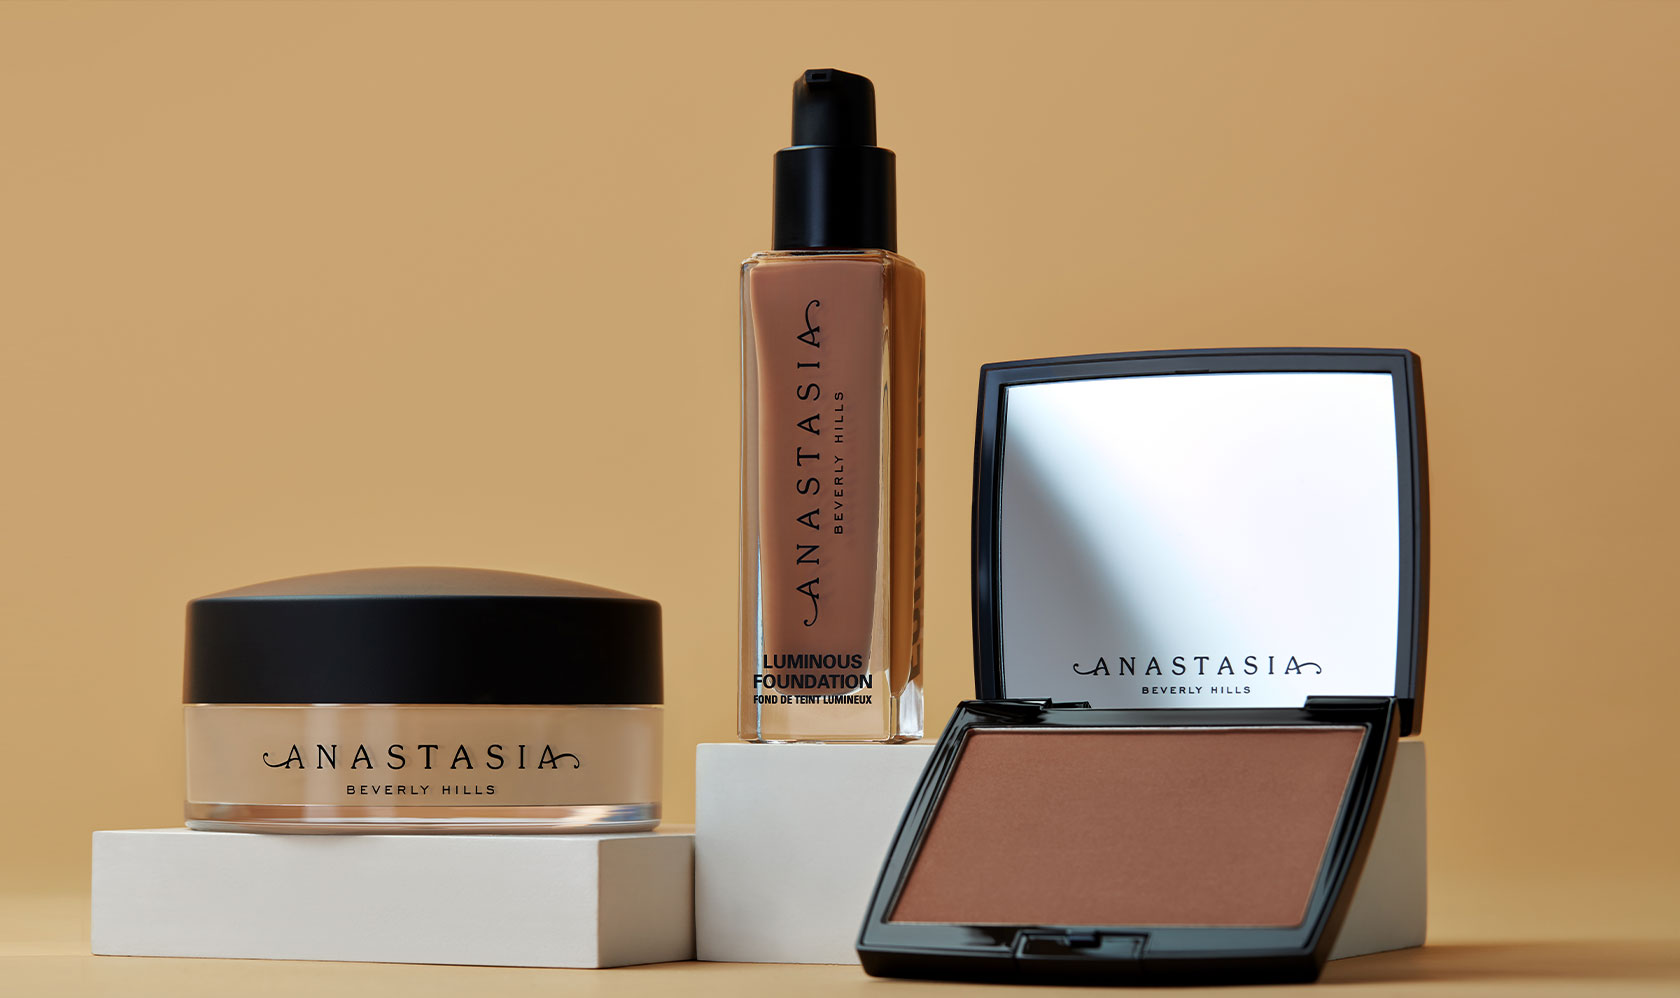 abh-luminous-foundation-4